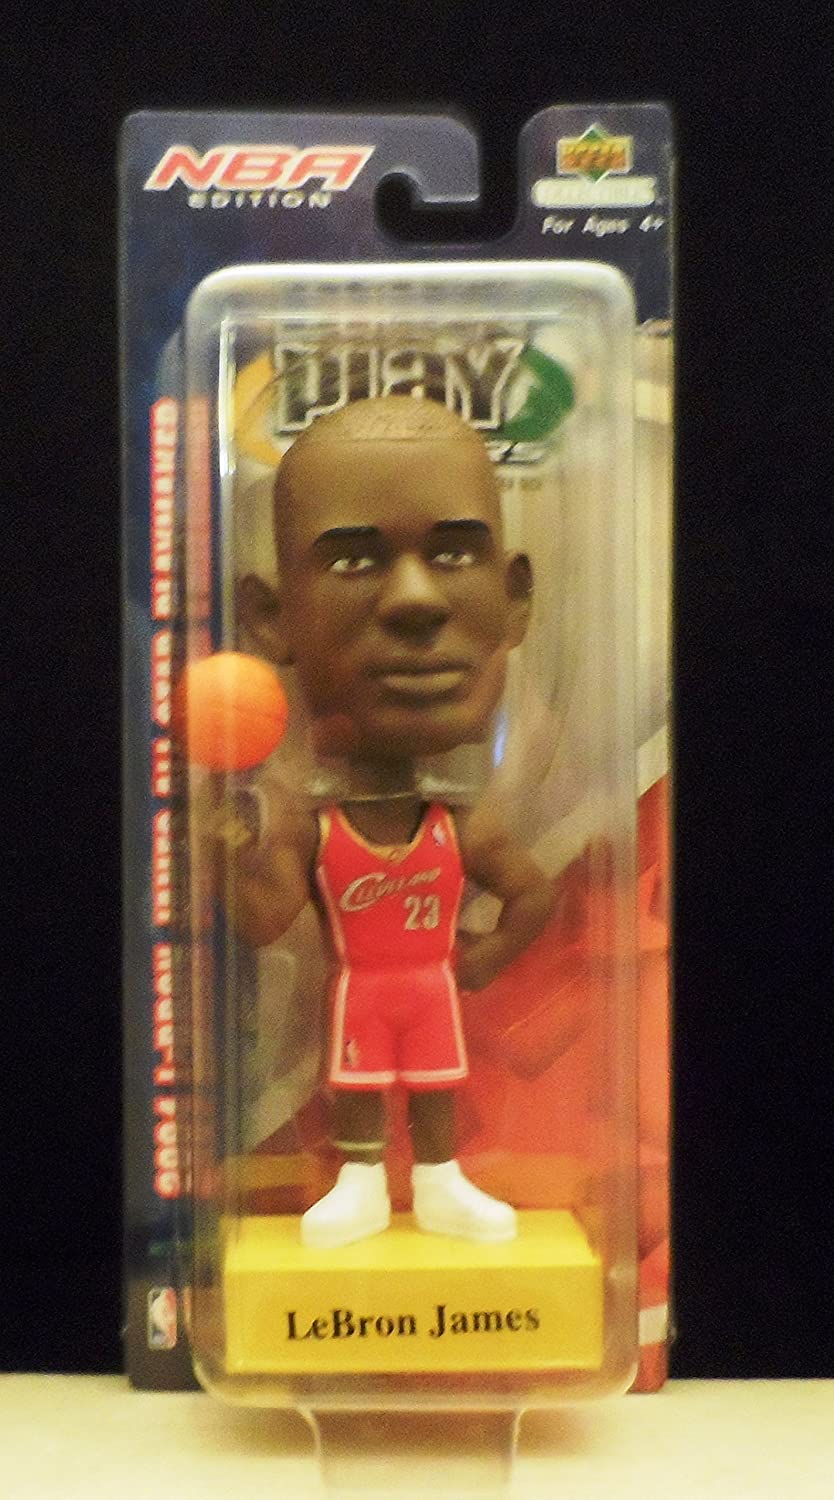 2004 Upper Deck Playmakers Lebron James Cleveland Cavaliers Bobblehead - Only 5, 000 Made